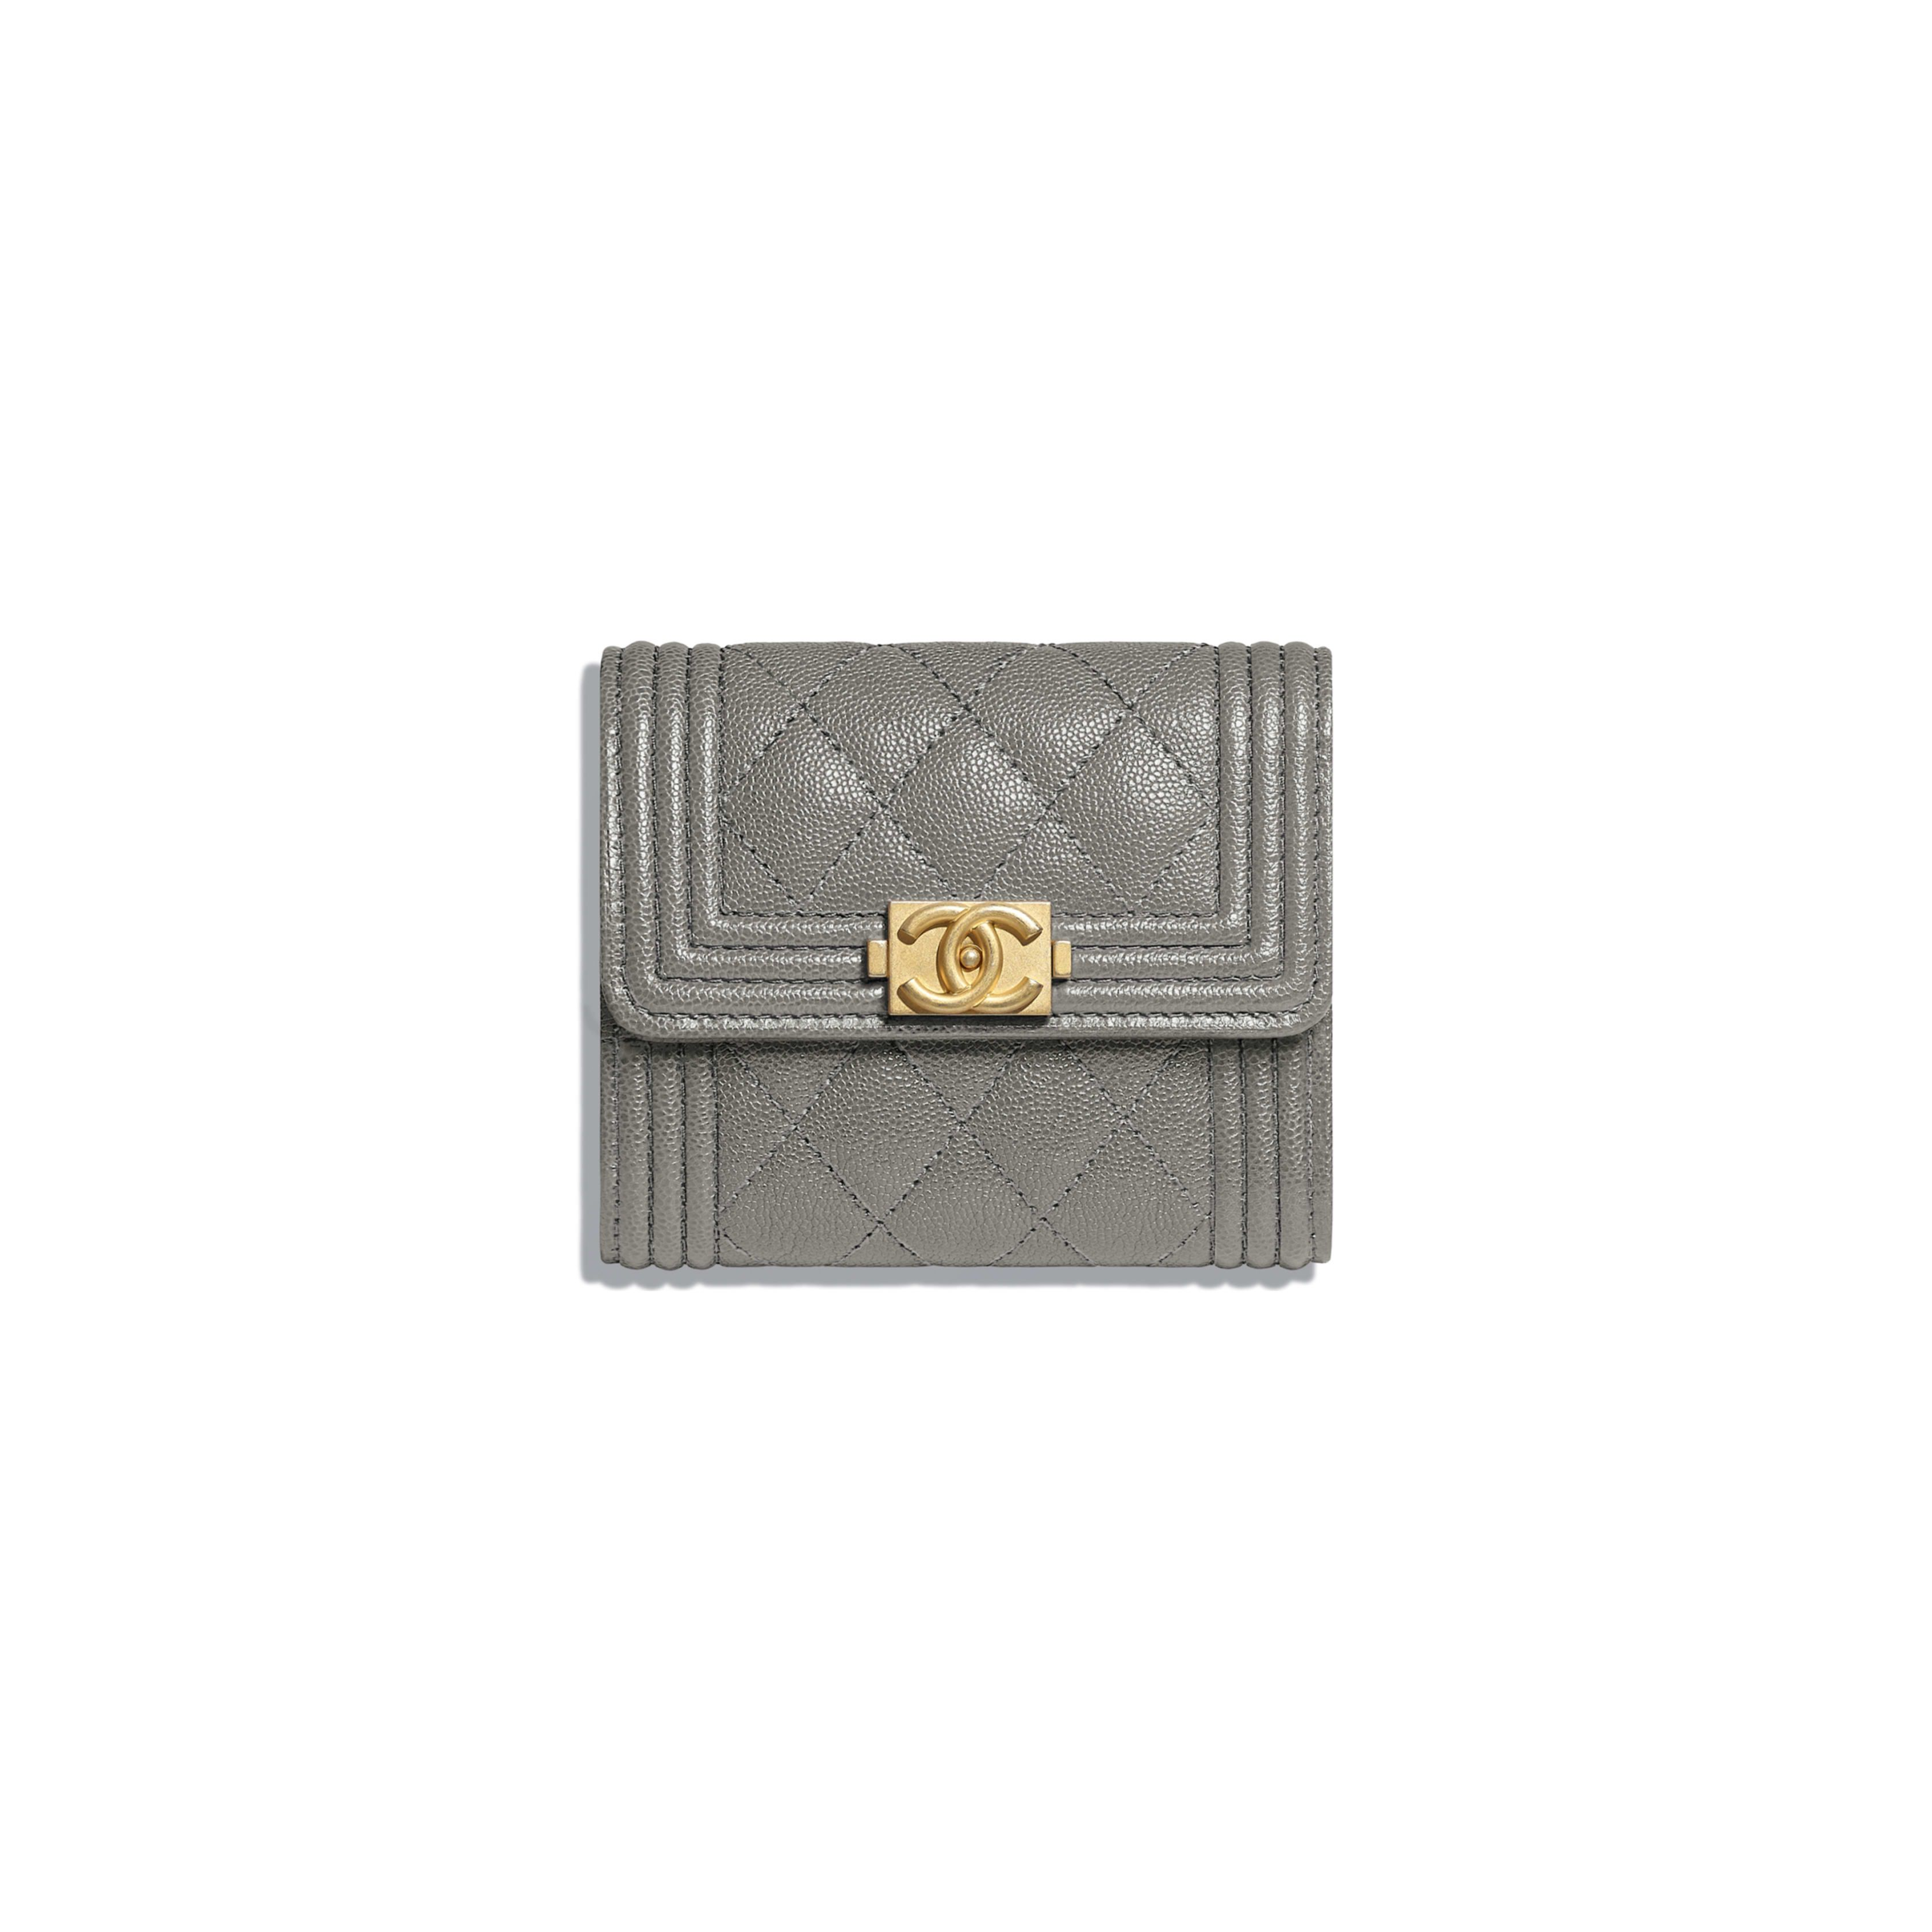 e500a6c5df07 BOY CHANEL Small Flap Wallet - Gray - Grained Calfskin & Gold-Tone Metal -  Default view - see full sized version